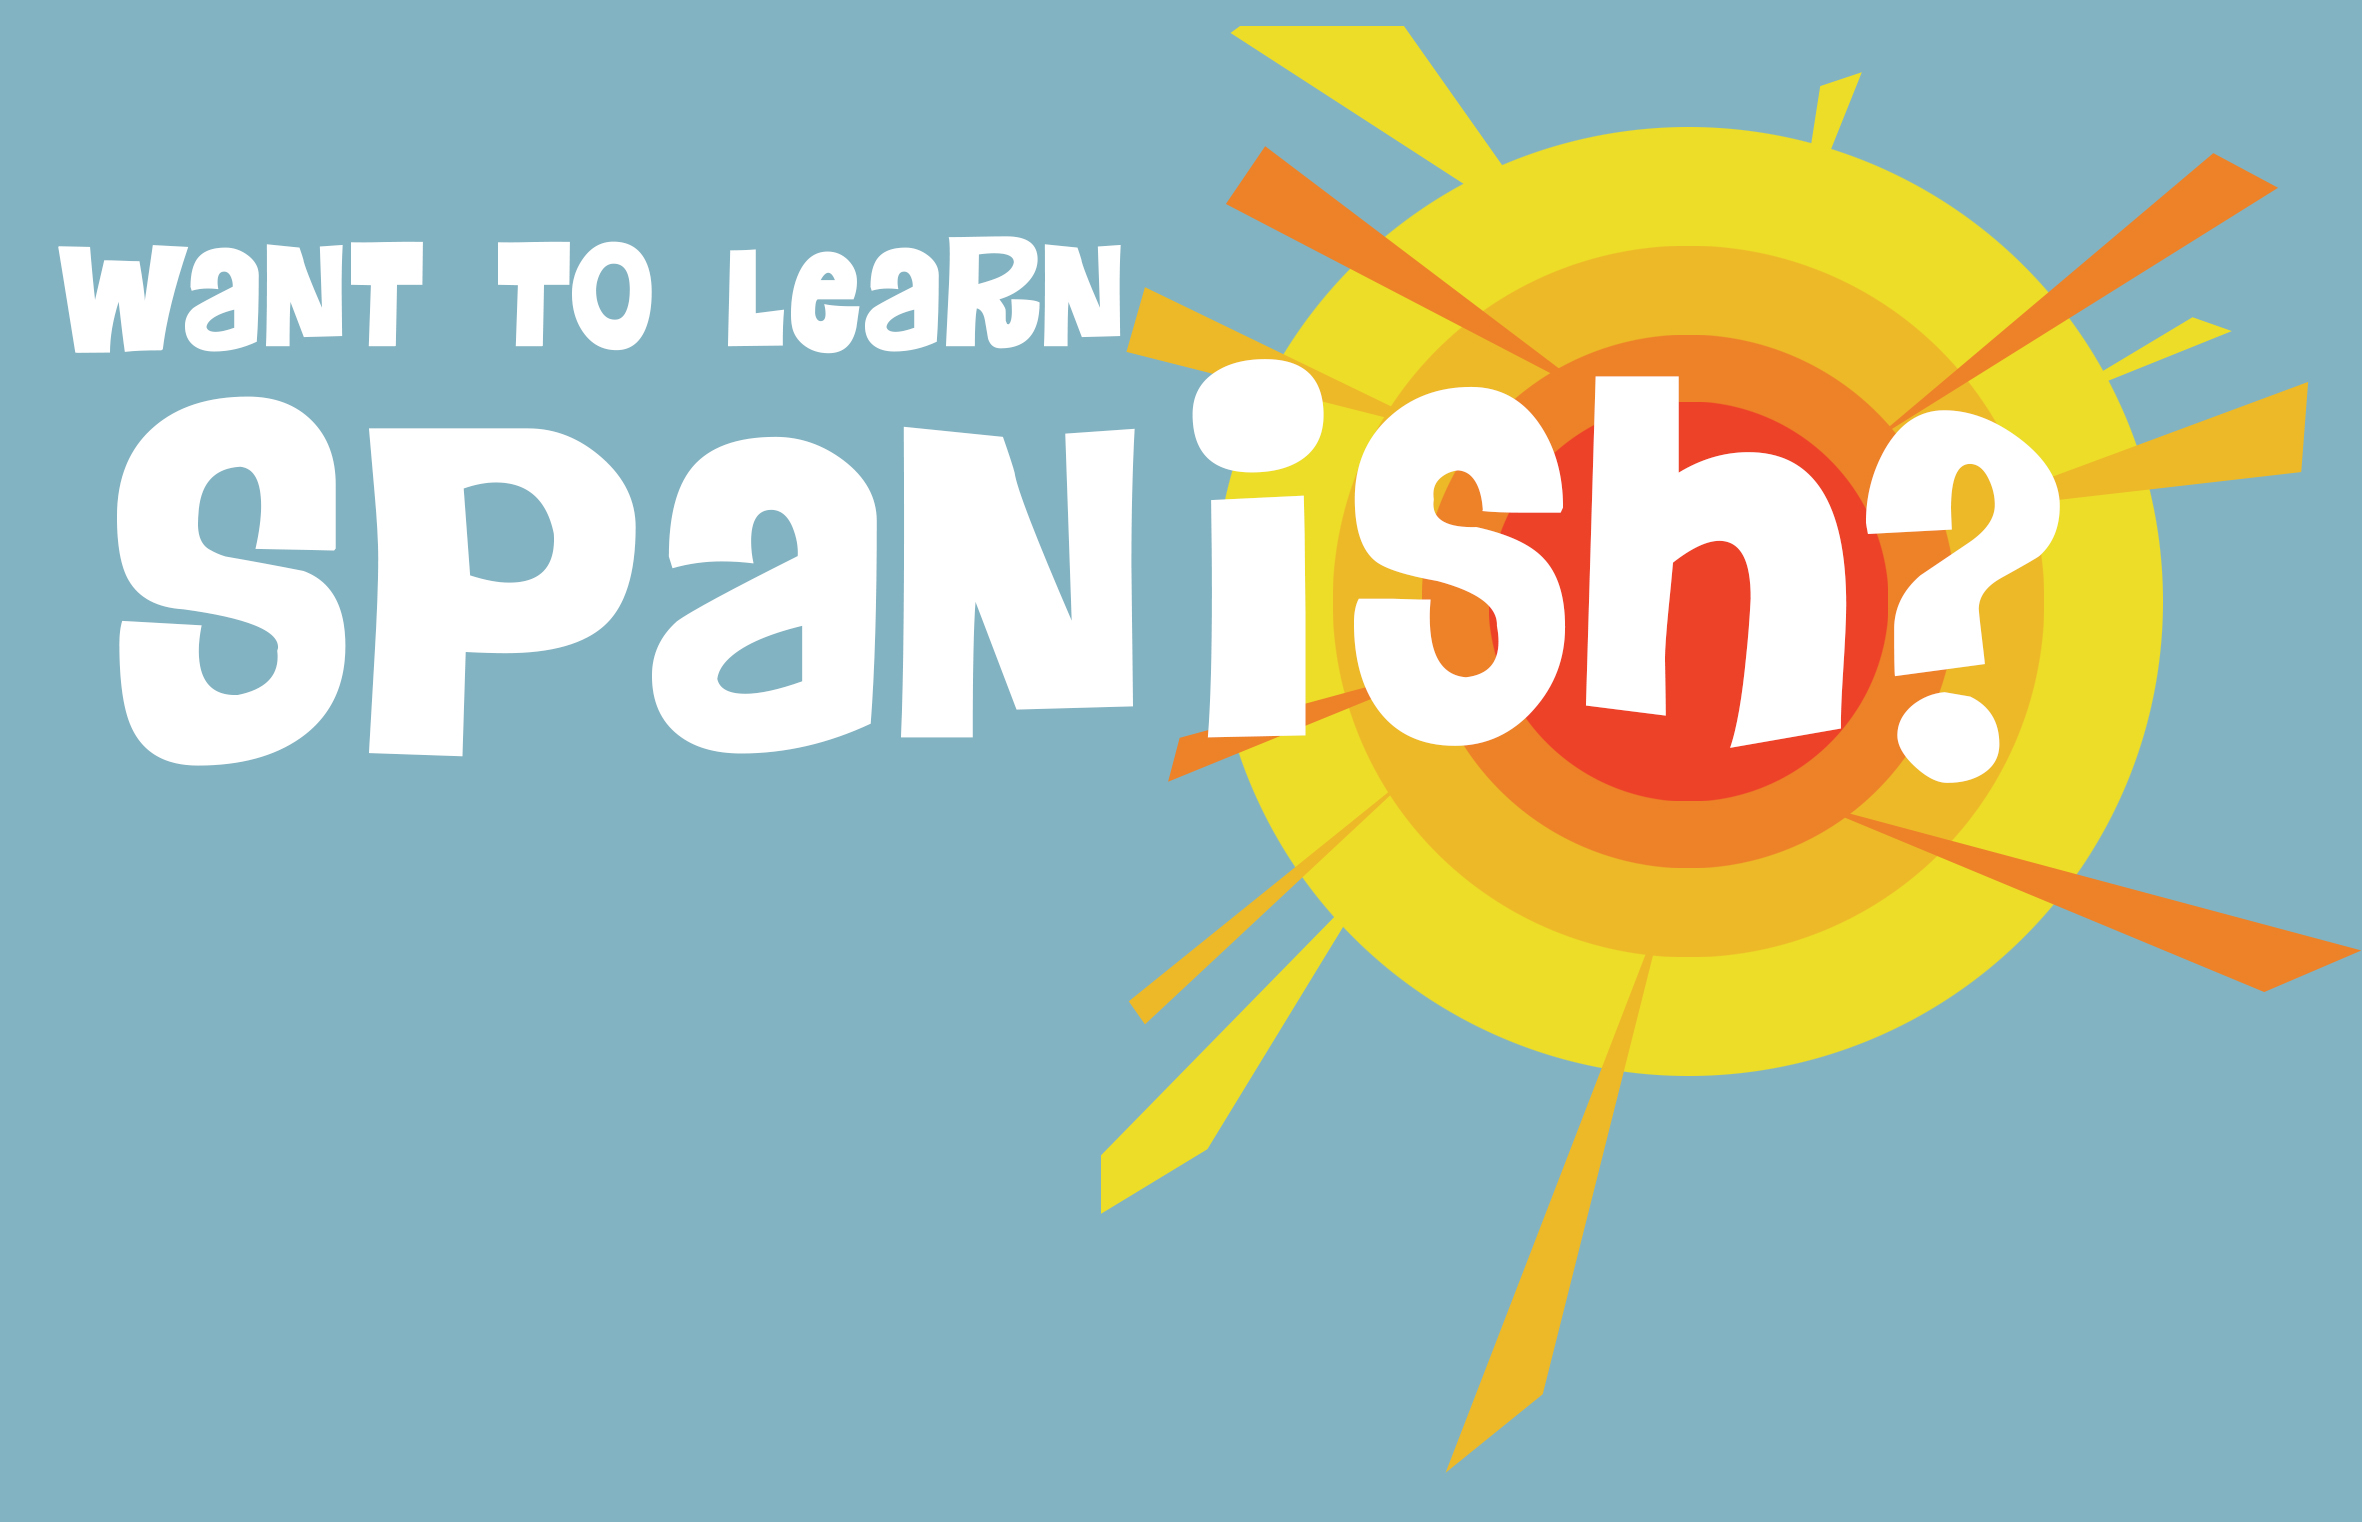 Why Should One Learn the Spanish Language?